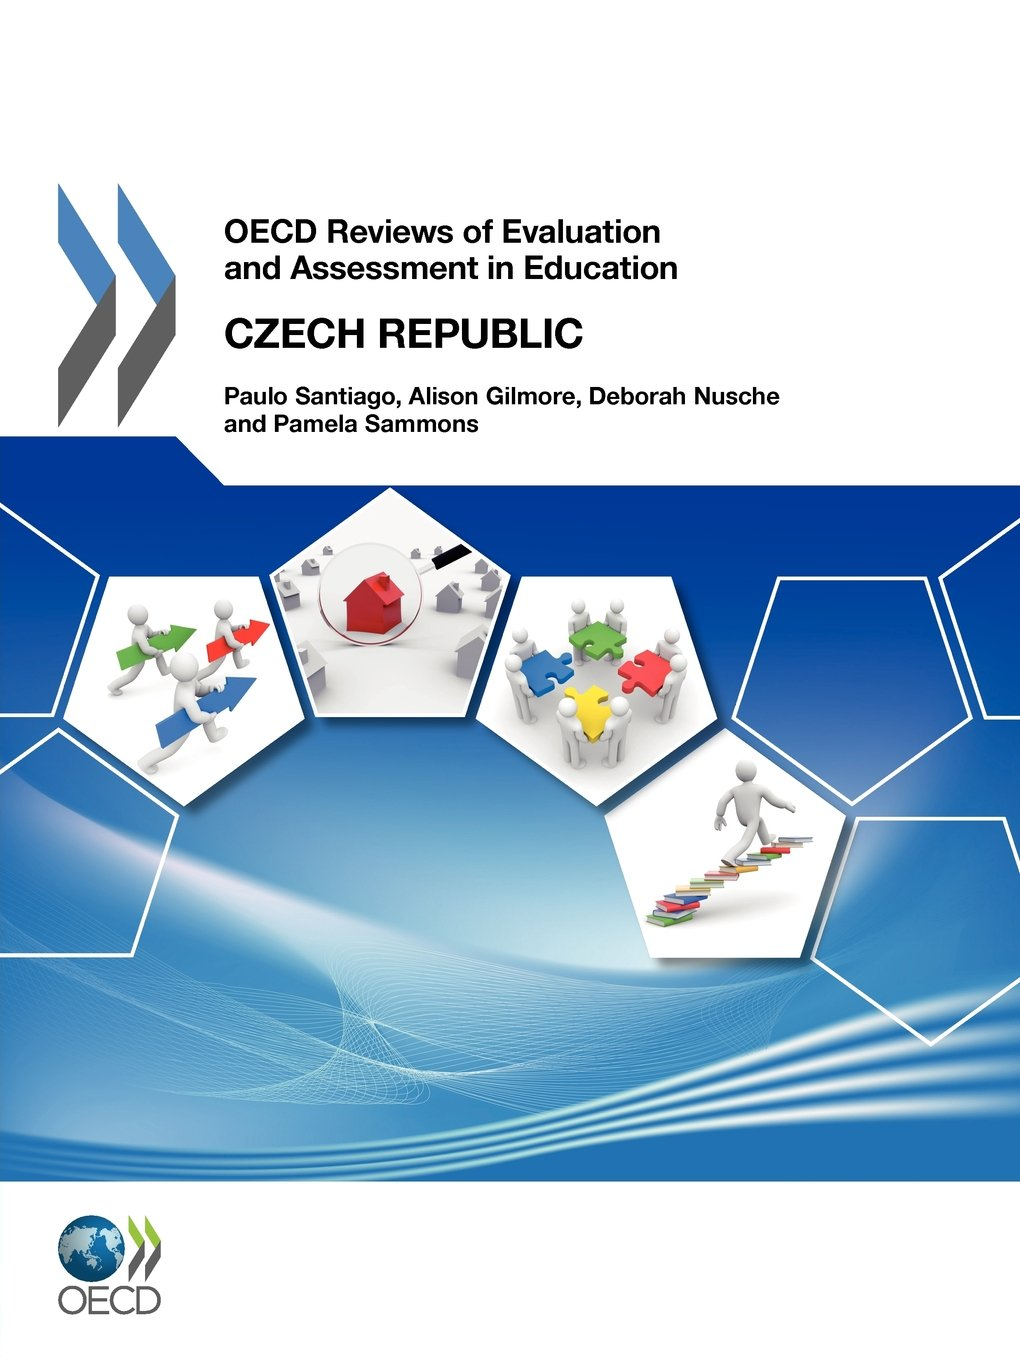 Download OECD Reviews of Evaluation and Assessment in Education OECD Reviews of Evaluation and Assessment in Education: Czech Republic 2012 pdf